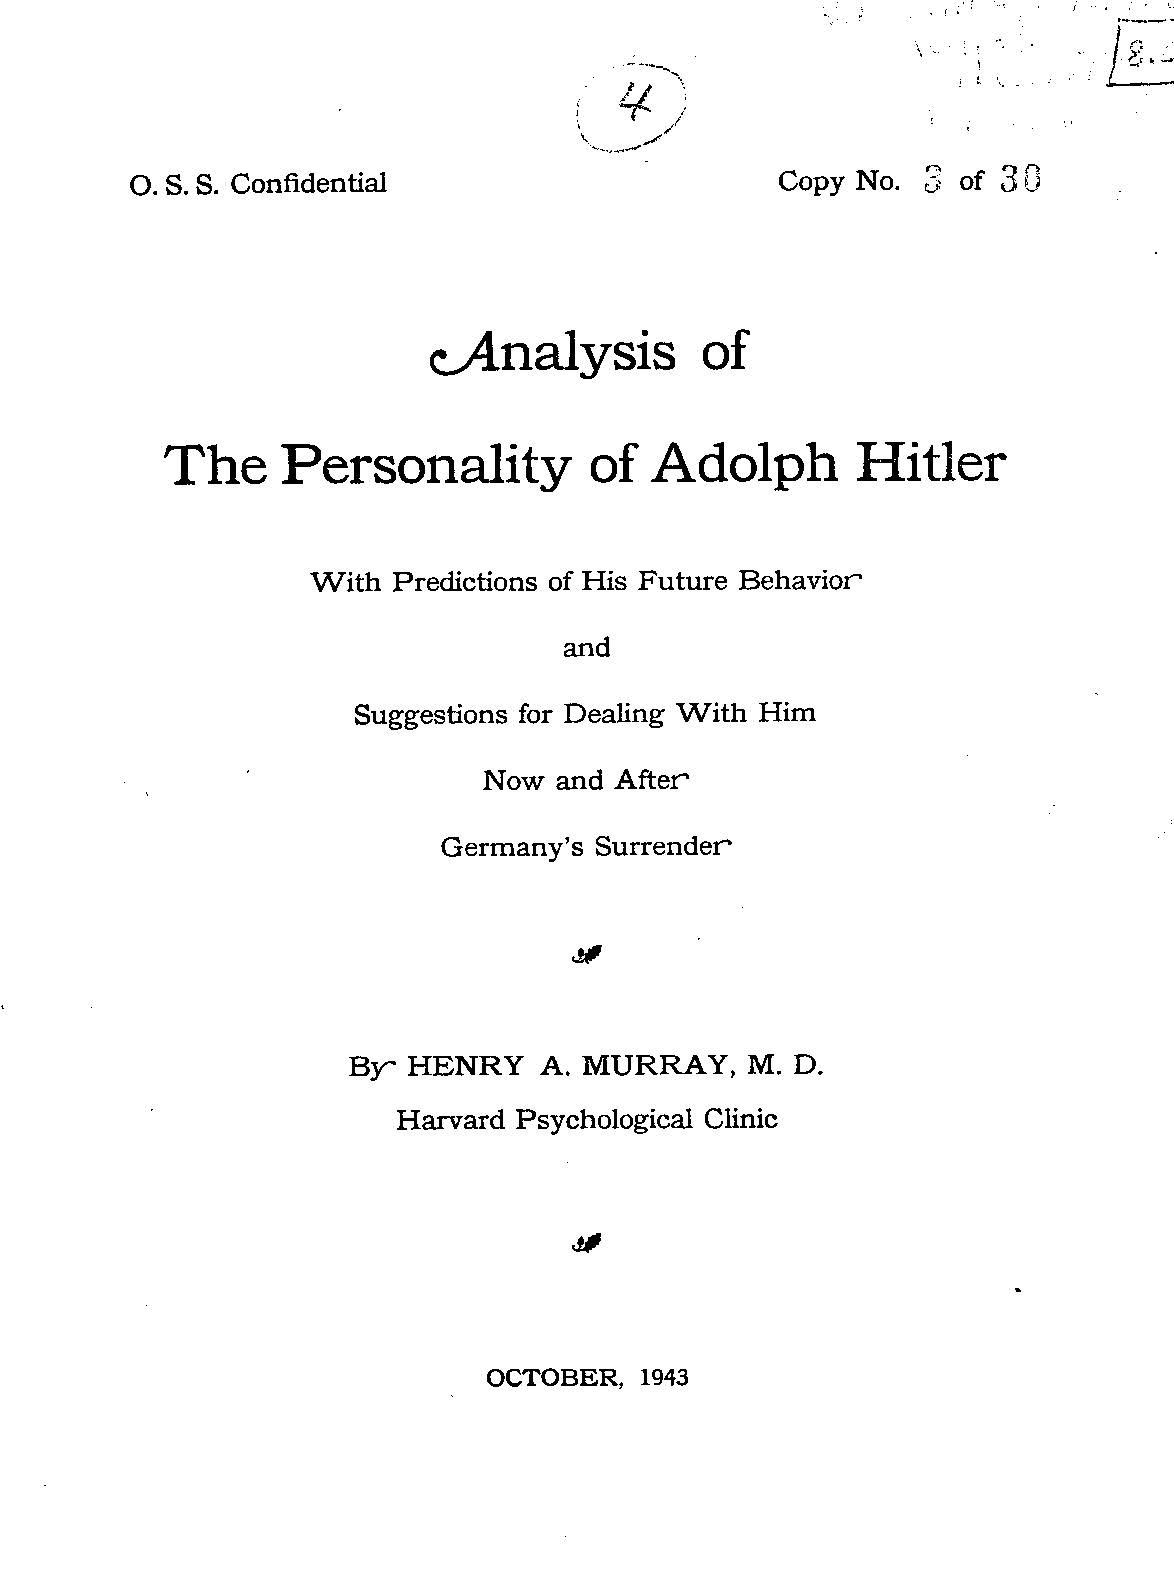 Analysis of the Personality of Adolph Hitler - Murray, Henry A. A confidential report by the proto-CIA Keywords: nazism; world war II; hitler Downloads: 41,594 4.00 out of 5 stars 4.00 out of 5 stars 4.00 out of 5 stars 4.00 out of 5 stars(4 reviews)